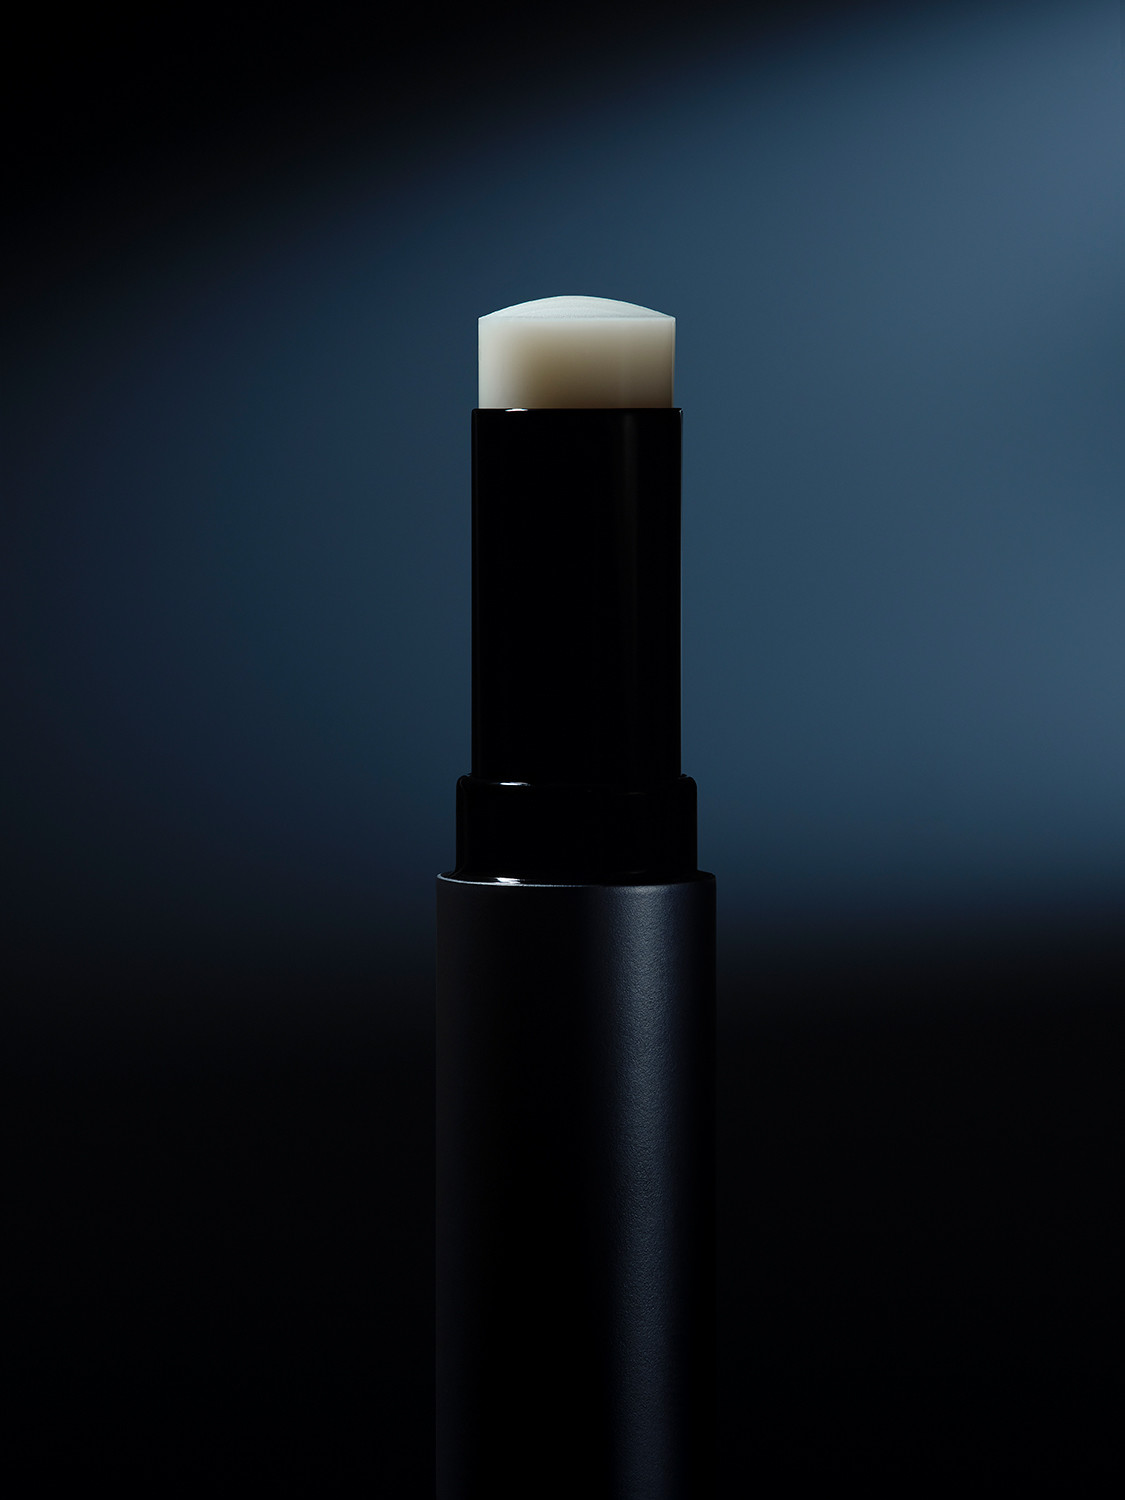 CHANEL BEAUTY, sHOT BY MARCUS SCHAEFER - © artifices